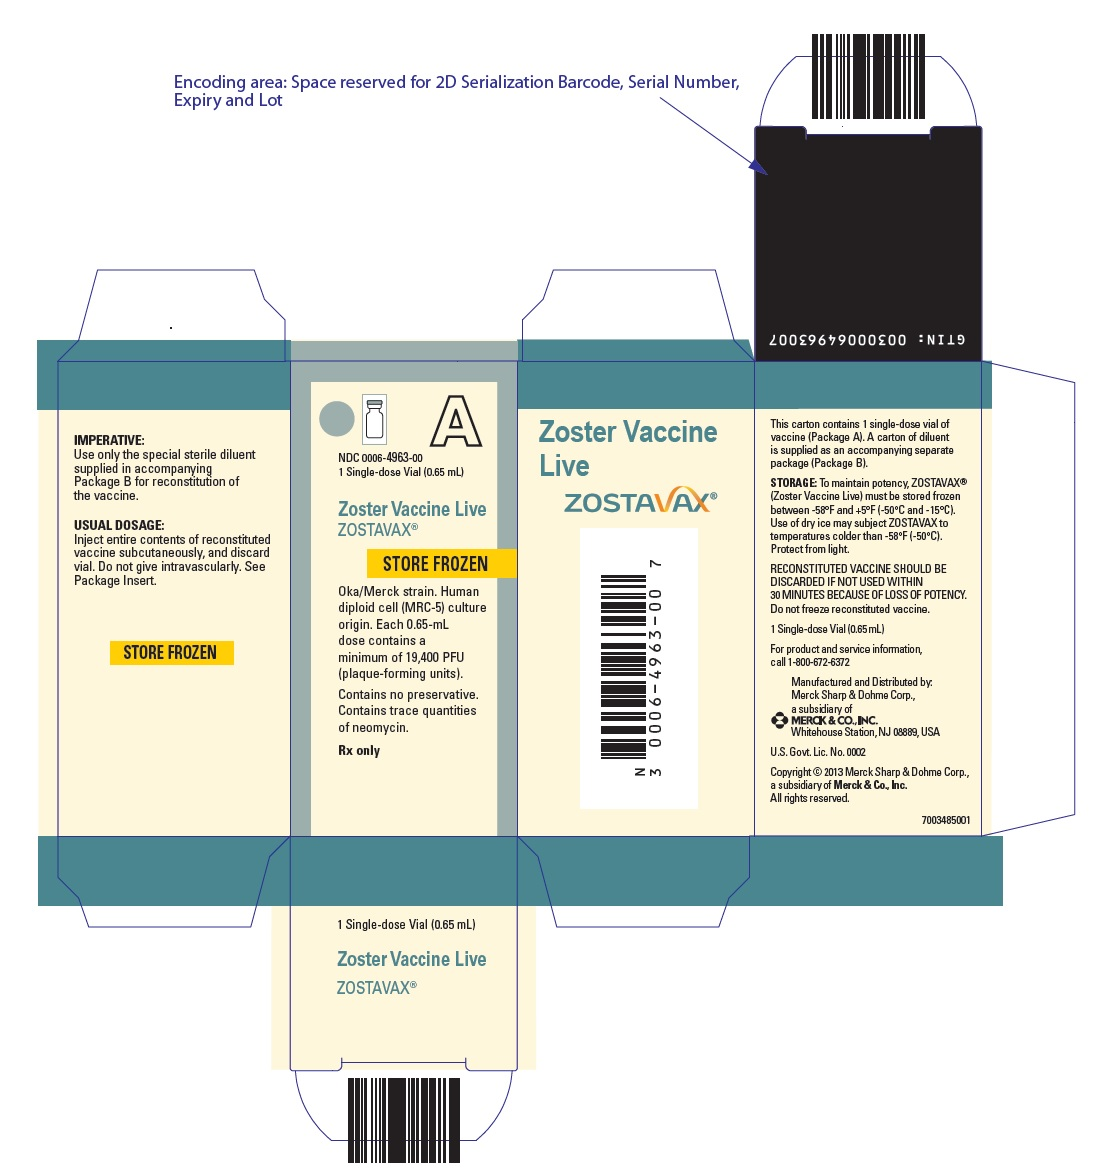 Dailymed Zostavax Zoster Vaccine Live Injection Powder